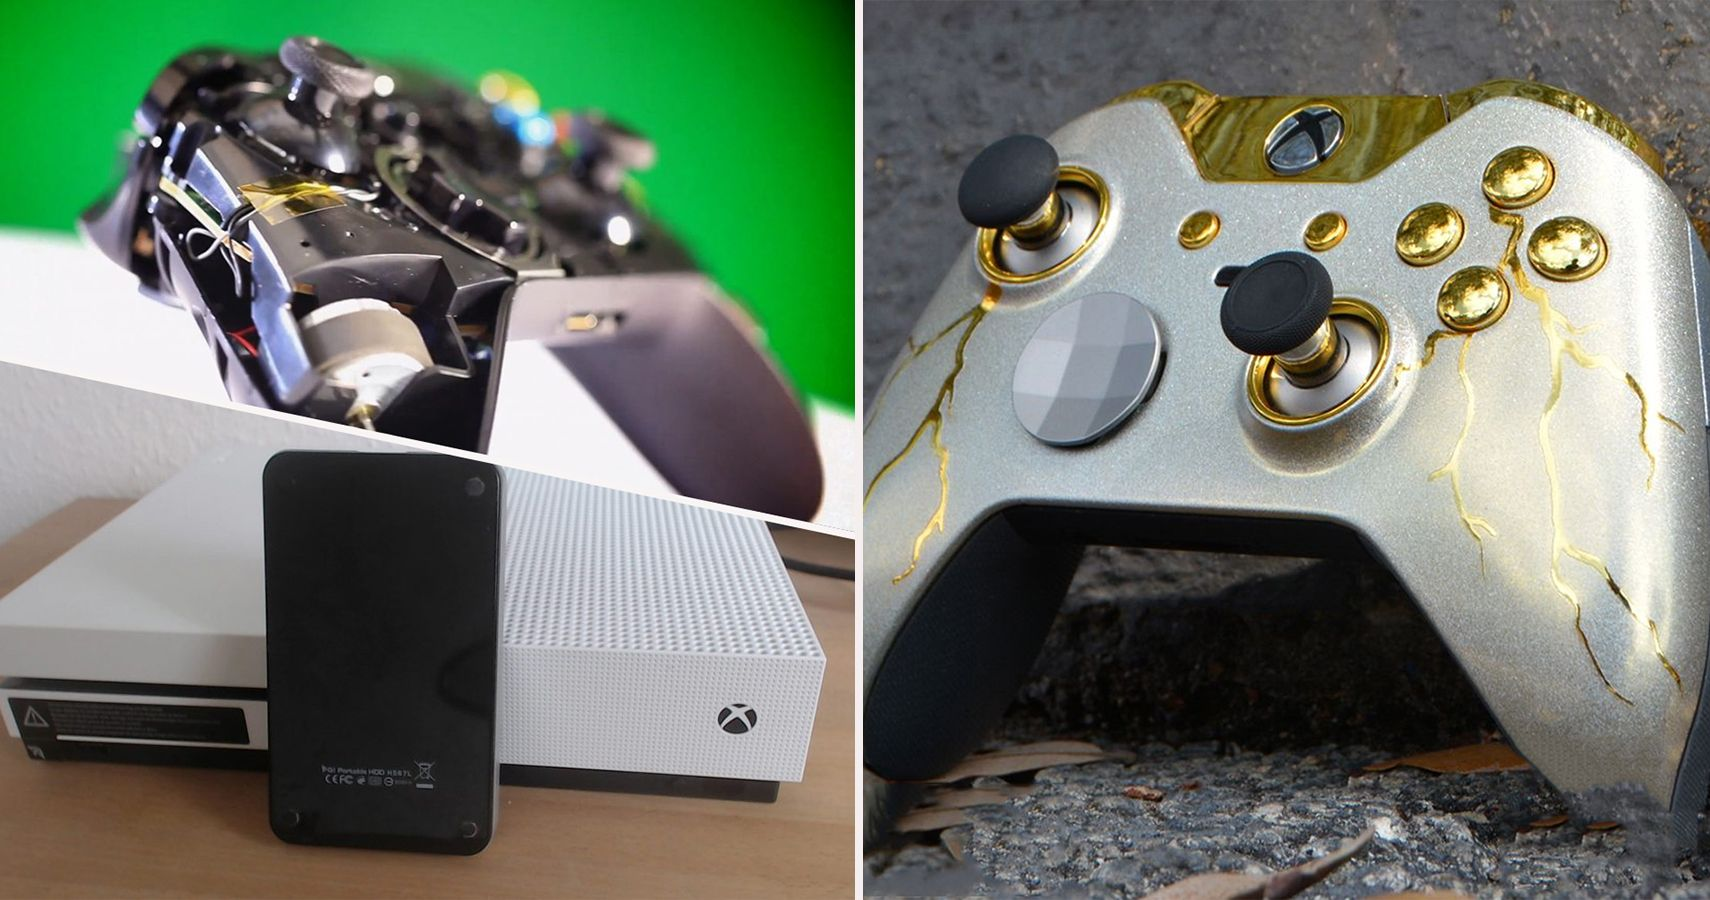 30 DIY Xbox One Hacks Every Gamer Should Know About | TheGamer